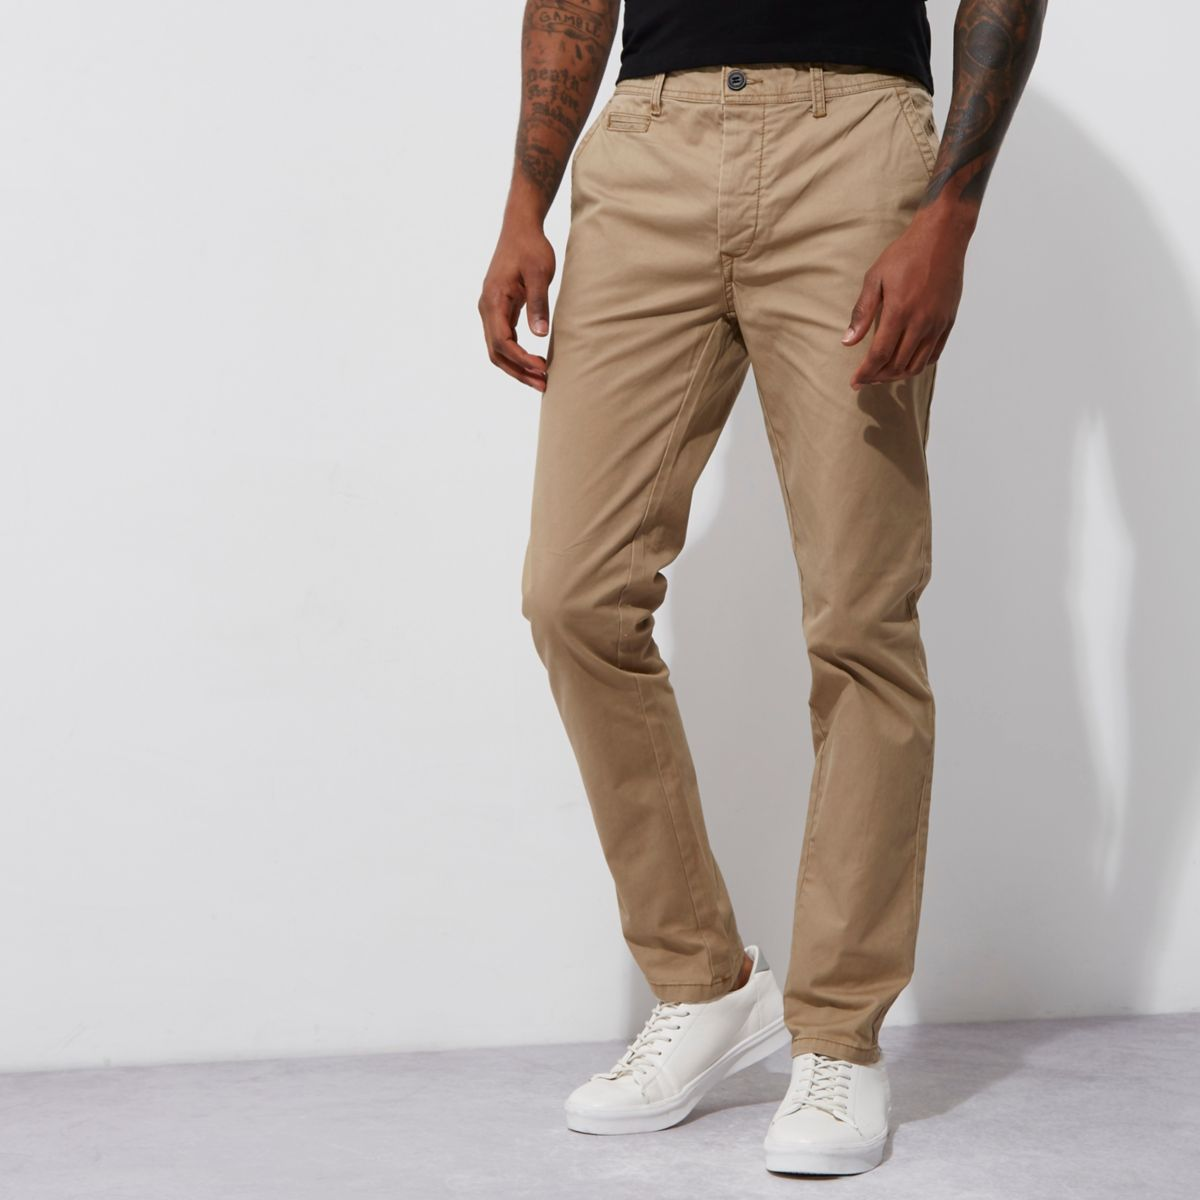 Men's chino pants are available in a variety of fits, colors, and styles. Whether you're looking for tried and true khaki pants for men, plaid chinos, or stylish skinny .